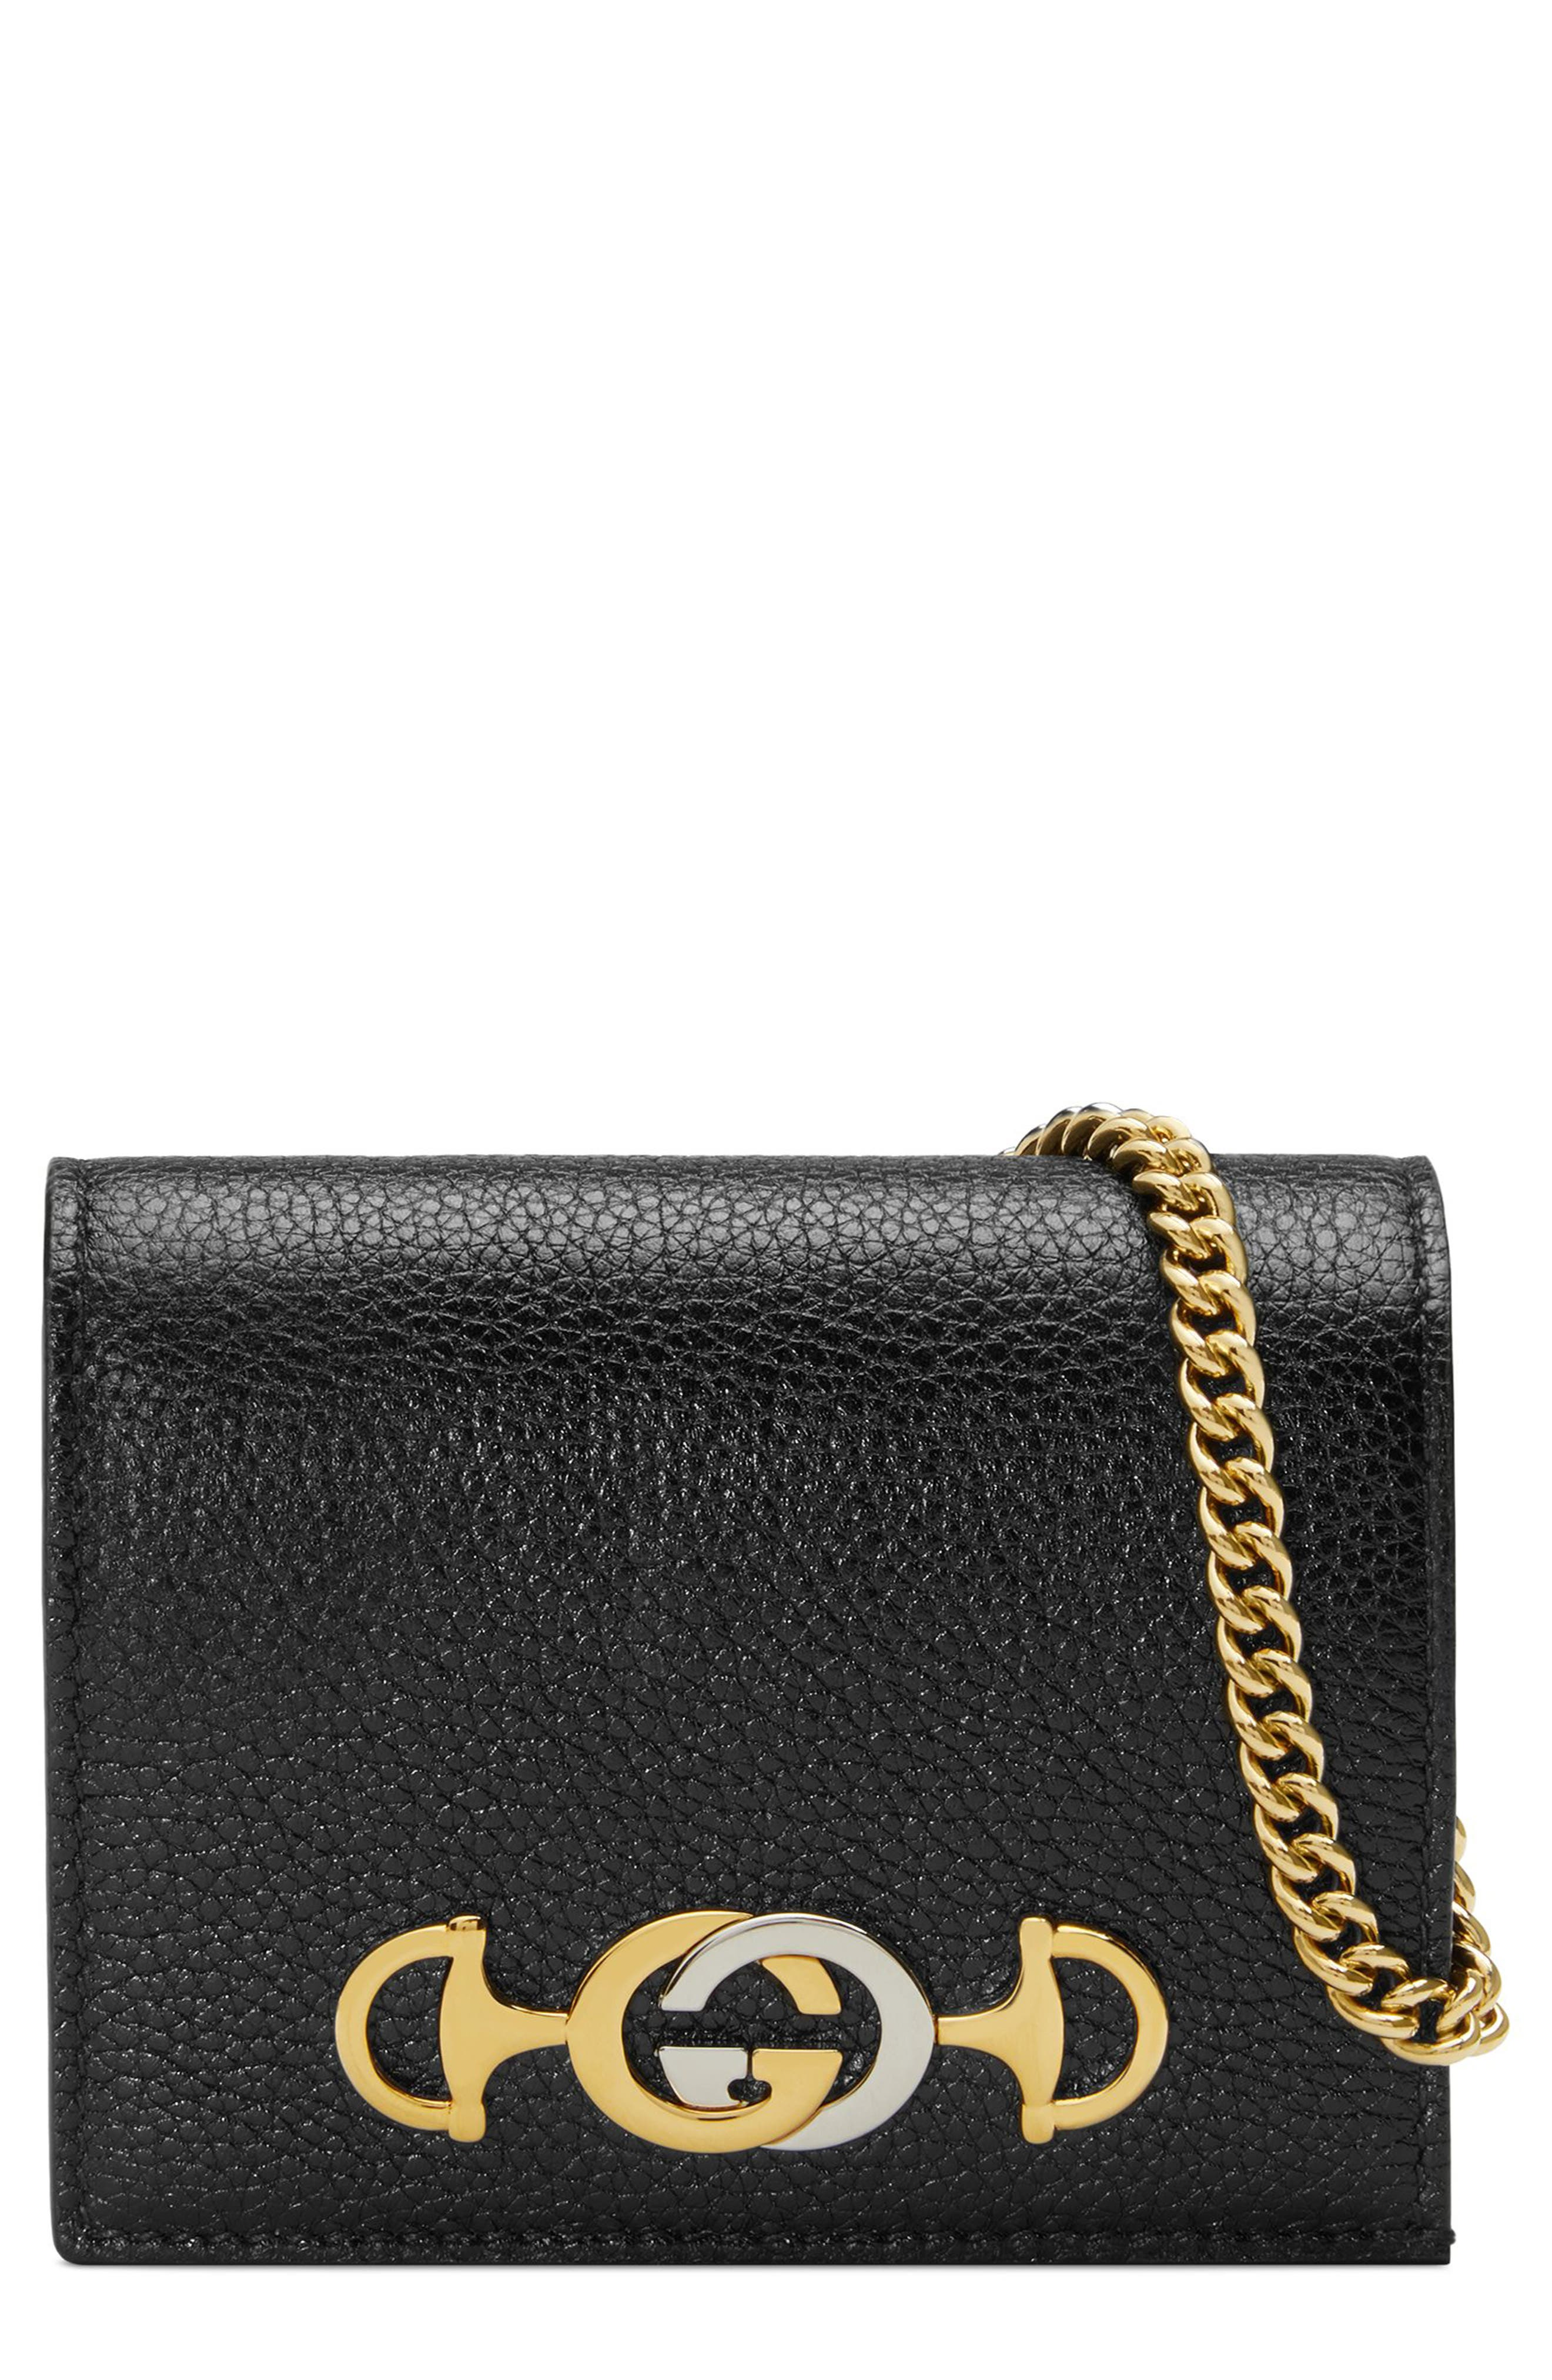 GUCCI Zumi 655 Leather Wallet on a Chain, Main, color, BLACK